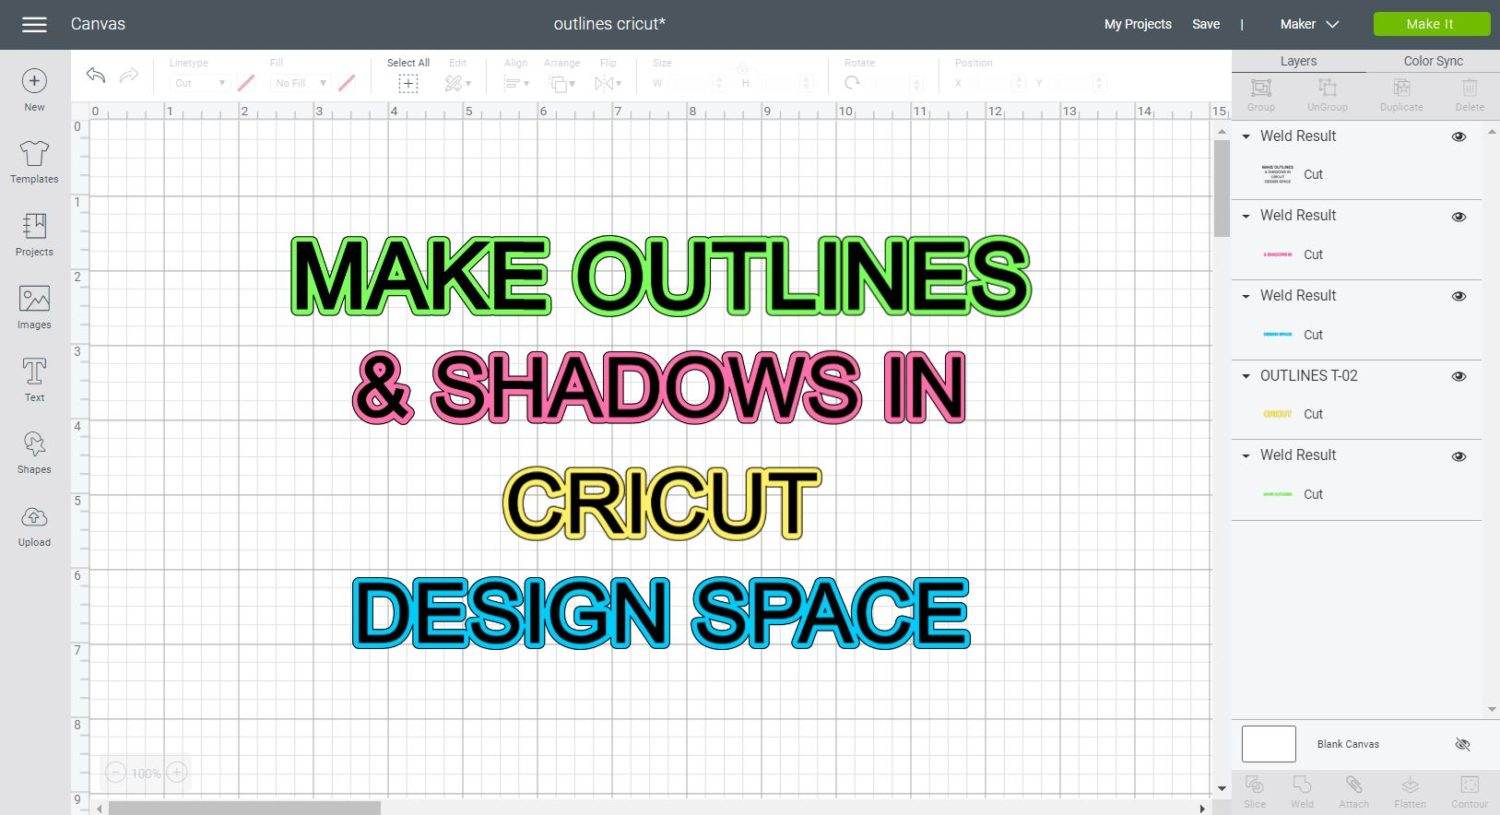 Featured image hot to make outlines in Cricut Design Space